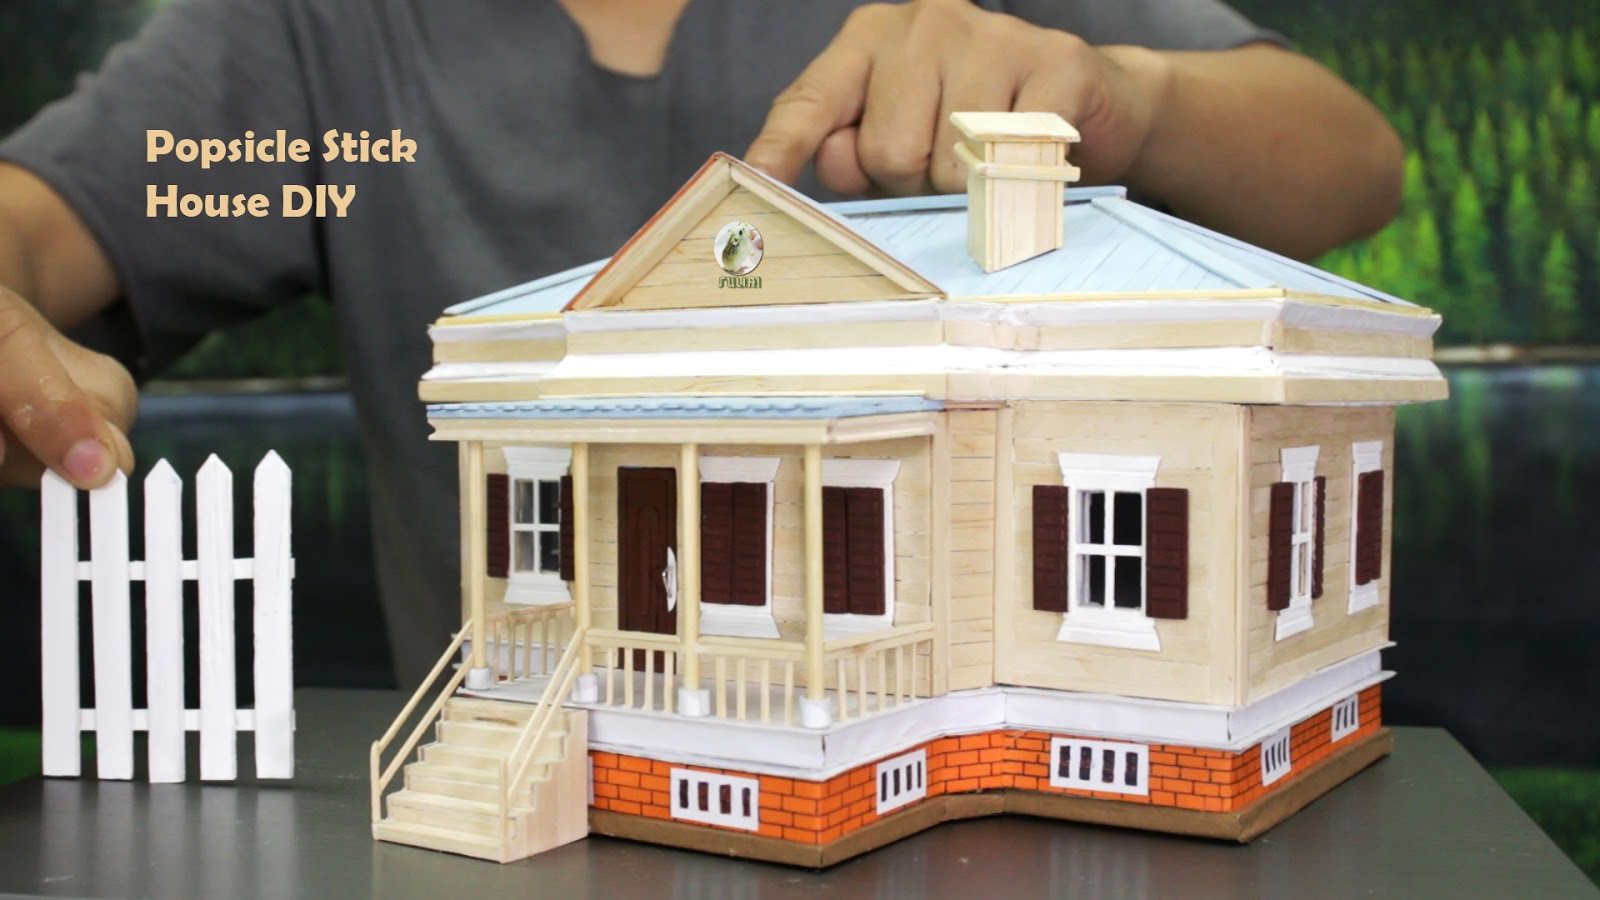 All Plans: 🏡 How to Make Popsicle Stick House 🏡 DIY